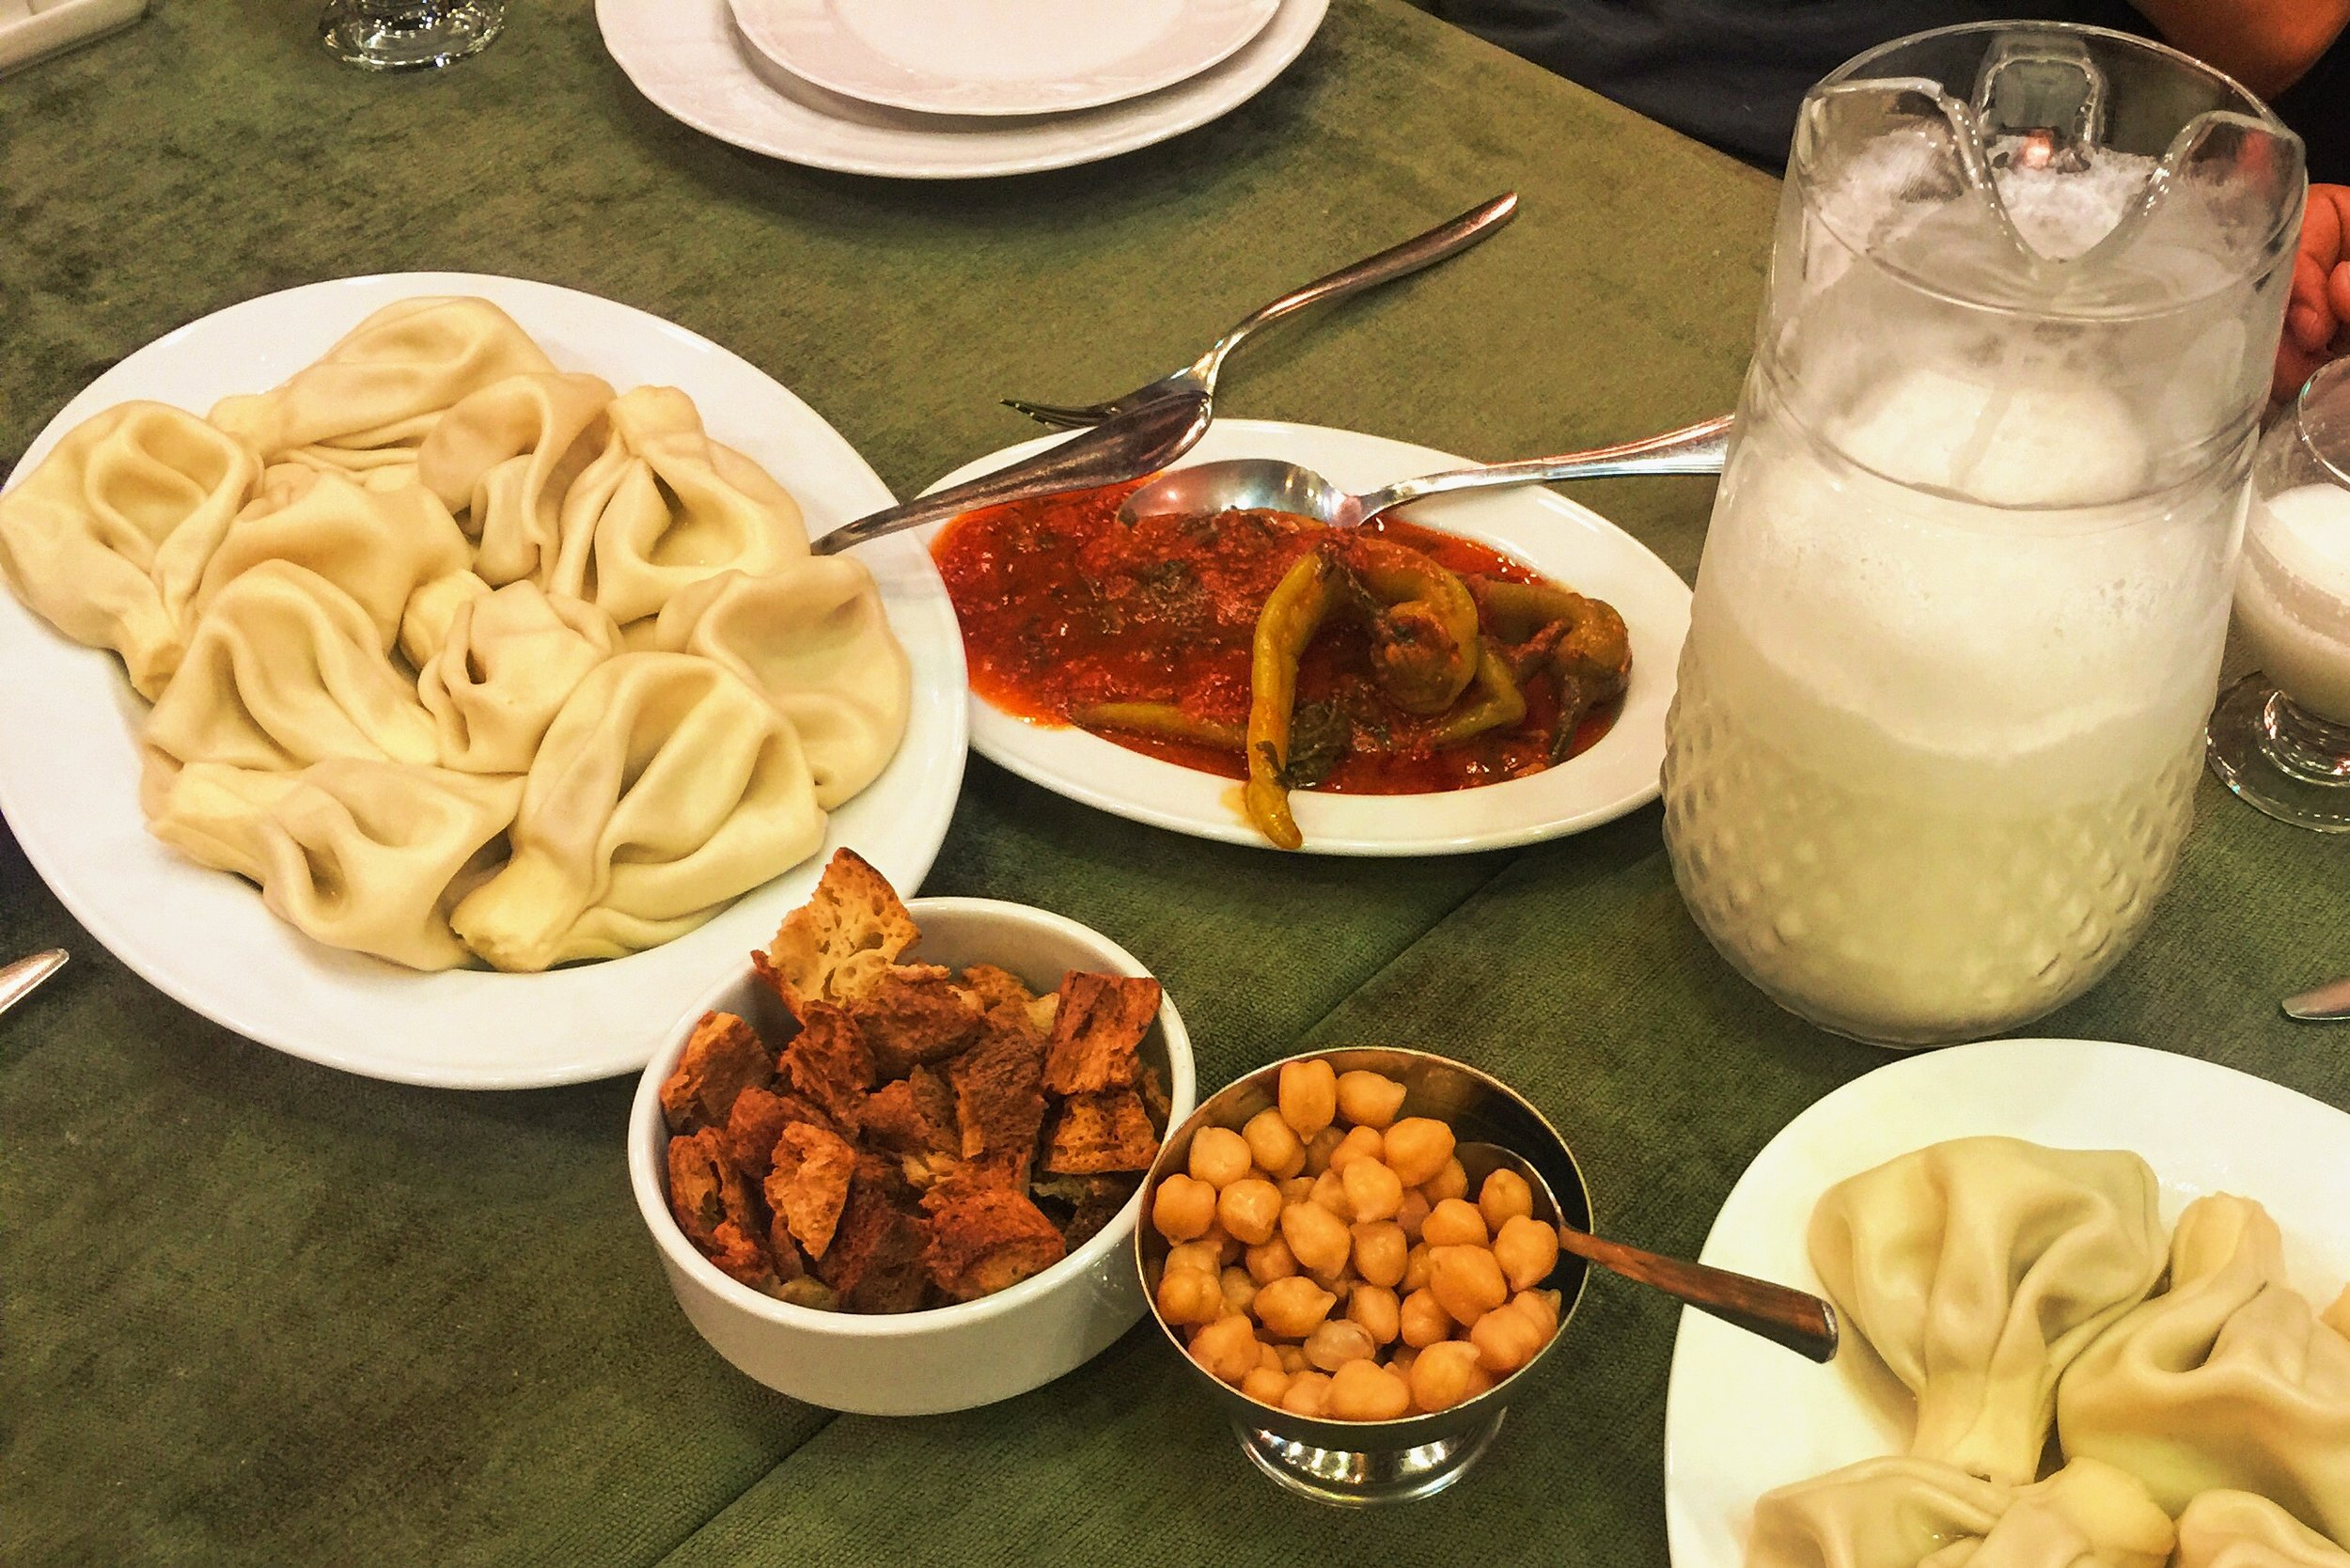 Platters of khinkali, condiments, chiles in tomato sauce, and tan to drink